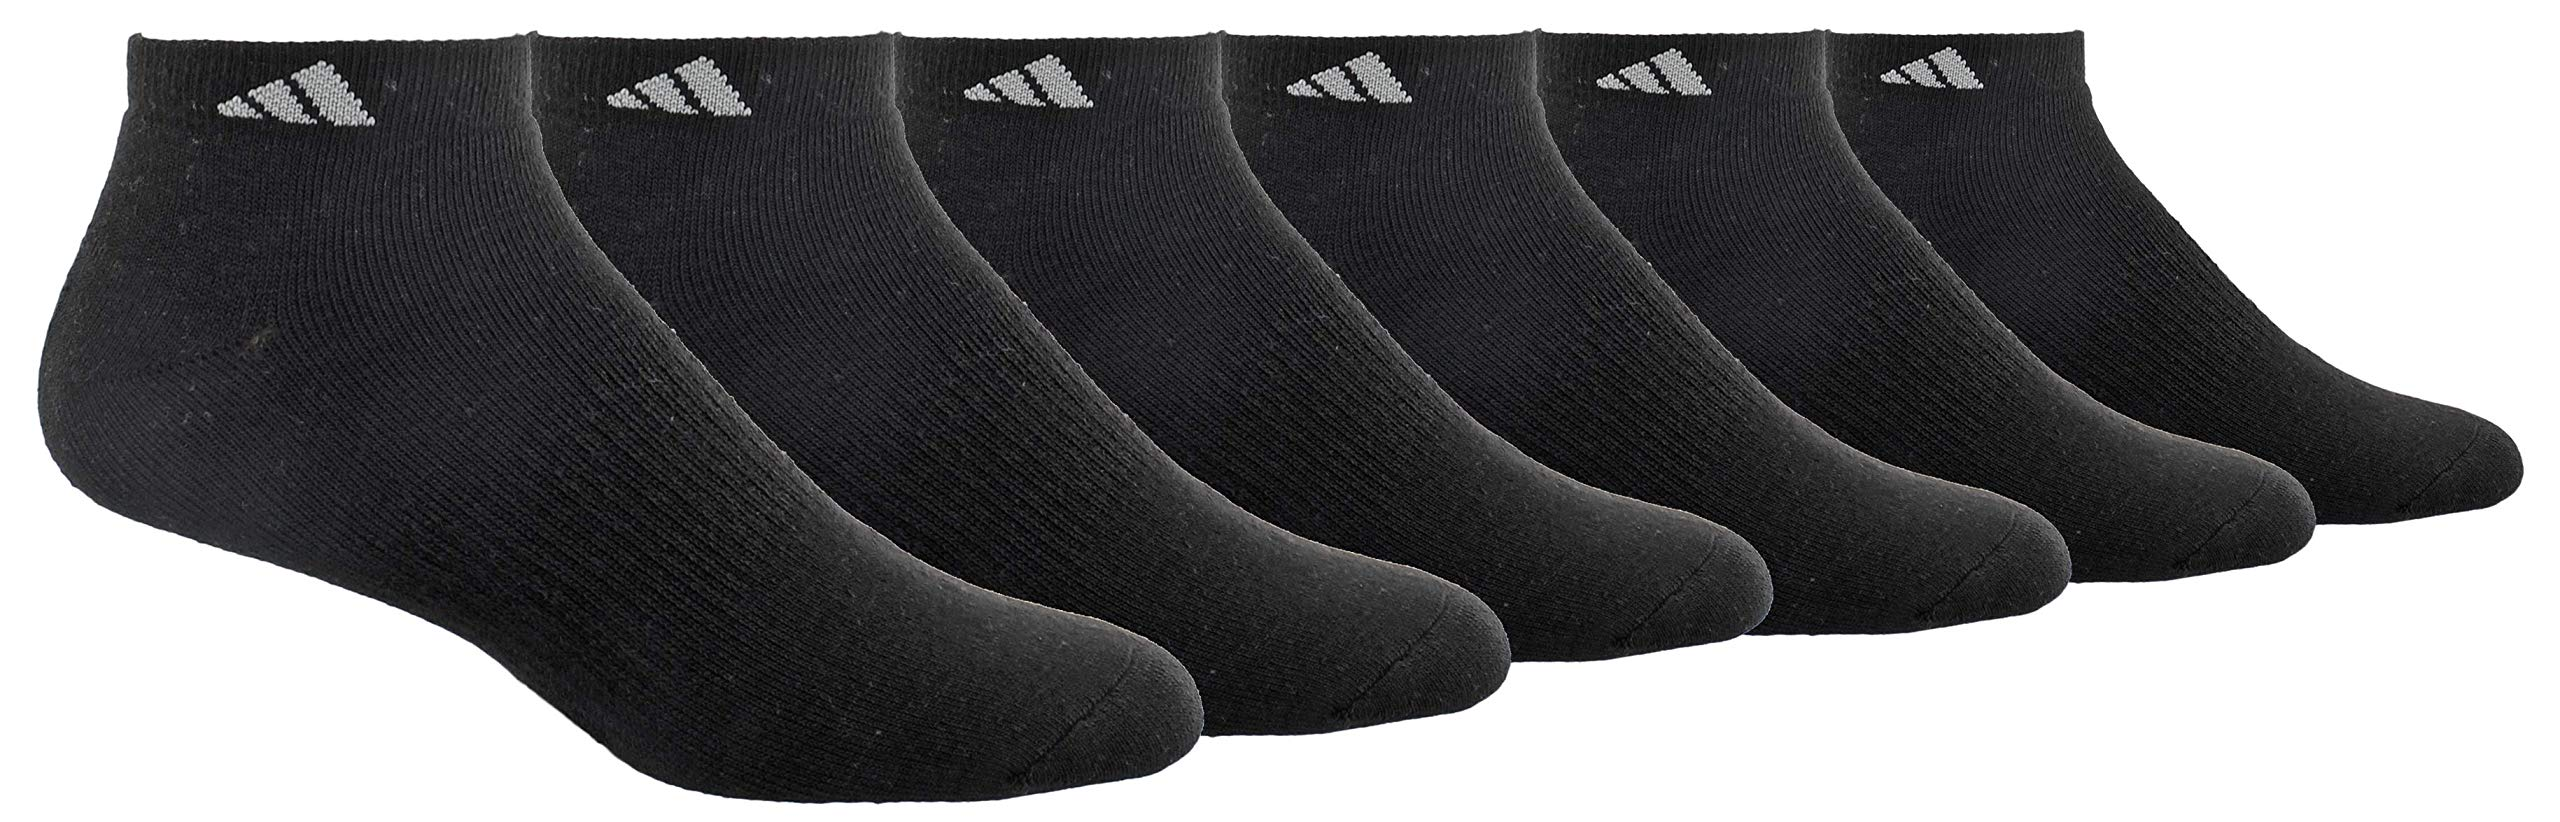 adidas Men's Athletic Cushioned Low Cut Socks (6-Pair), Black/Aluminum 2, Large, (Shoe Size 6-12) by adidas